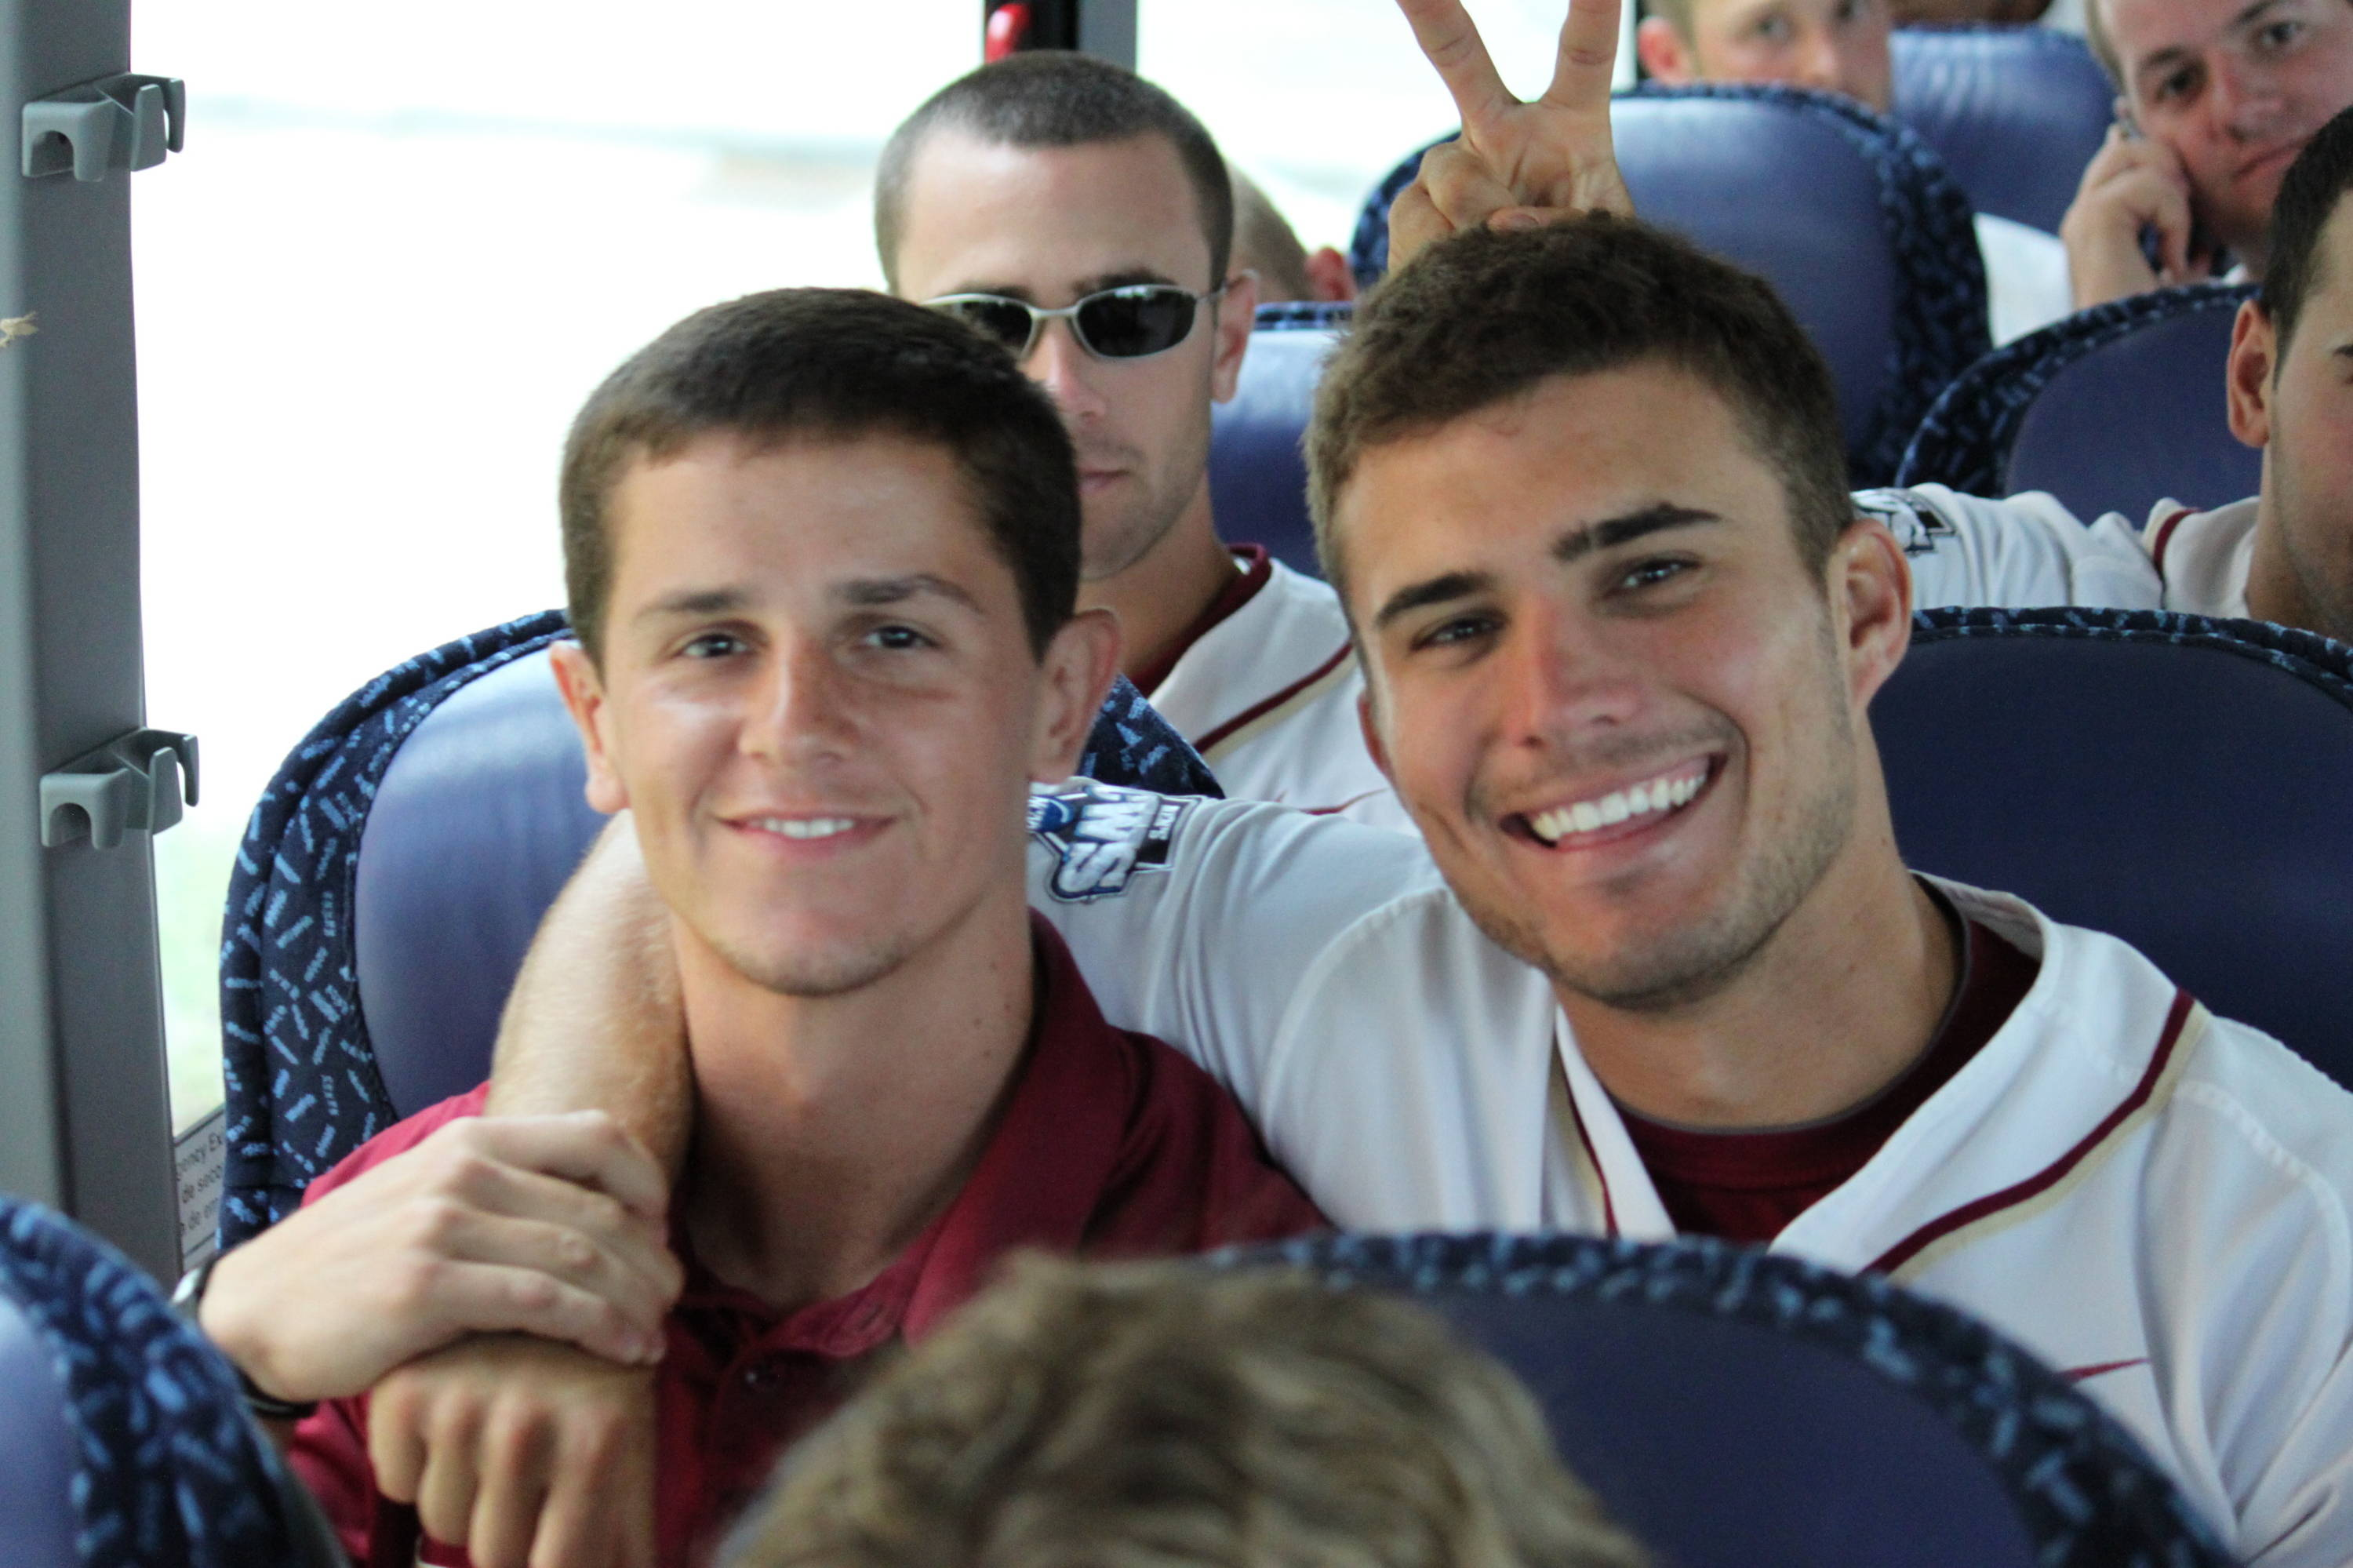 Derek Randolph and Robby Stahl on the bus ride back from the Children's Hospital